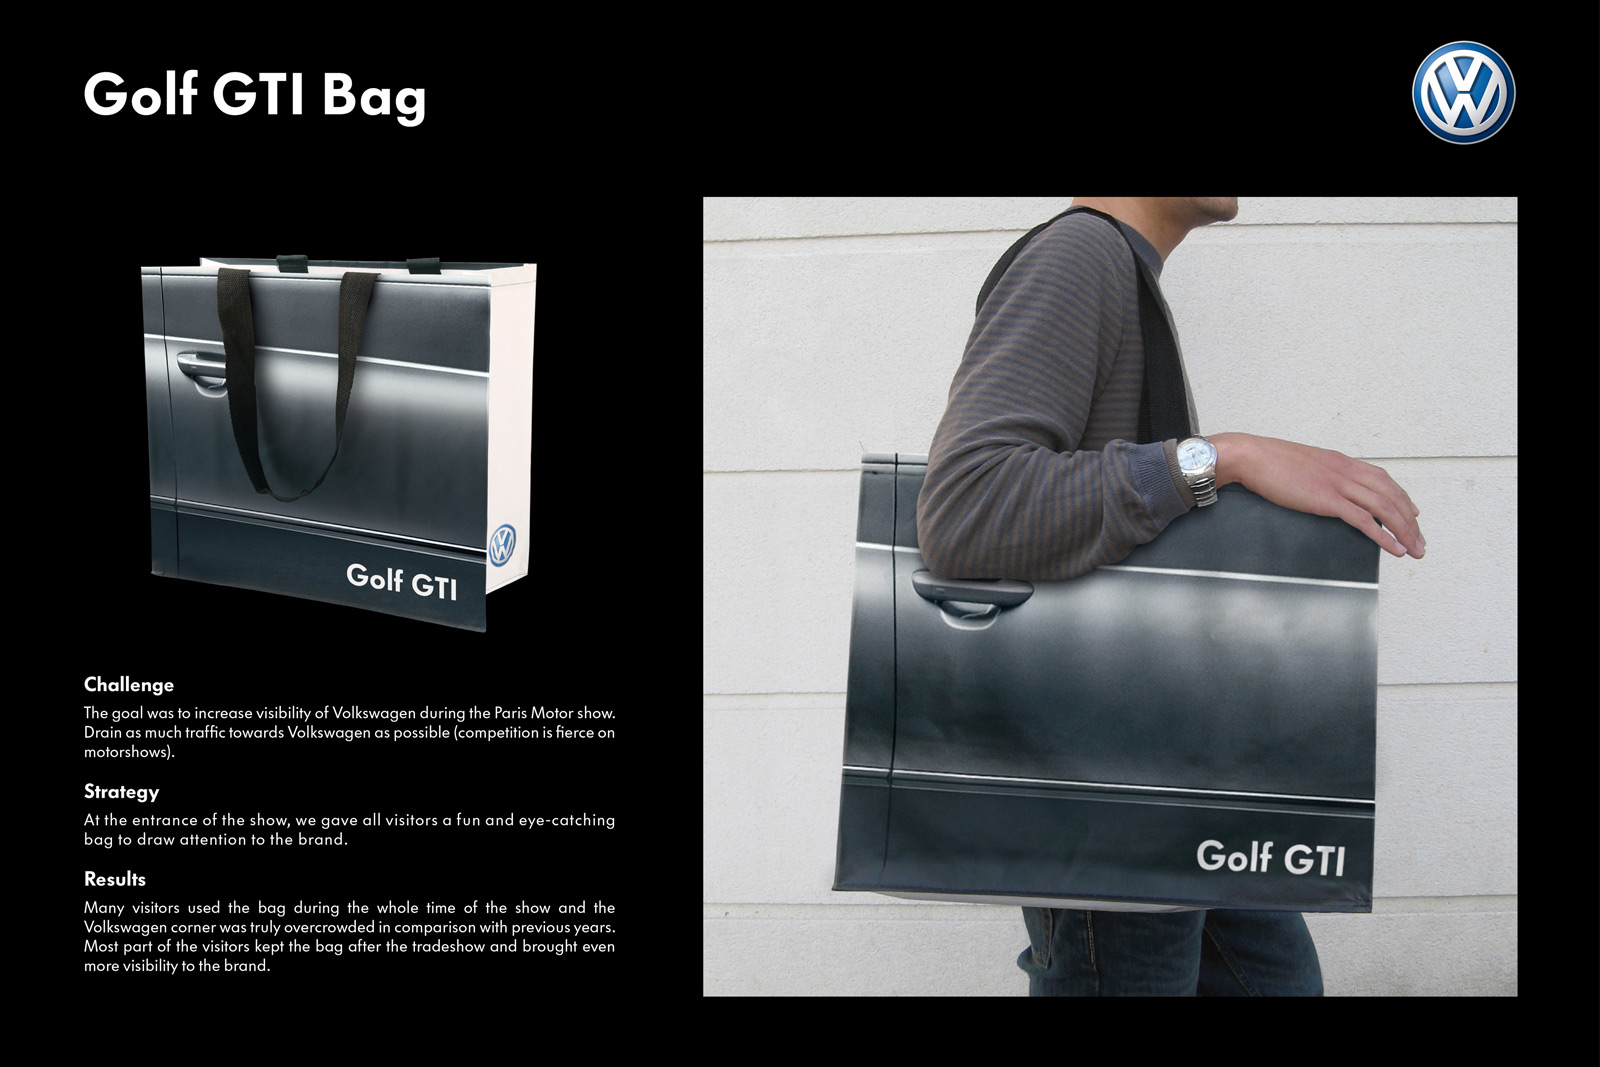 Volkswagen Golf GTI Bag Guerilla Marketing Example